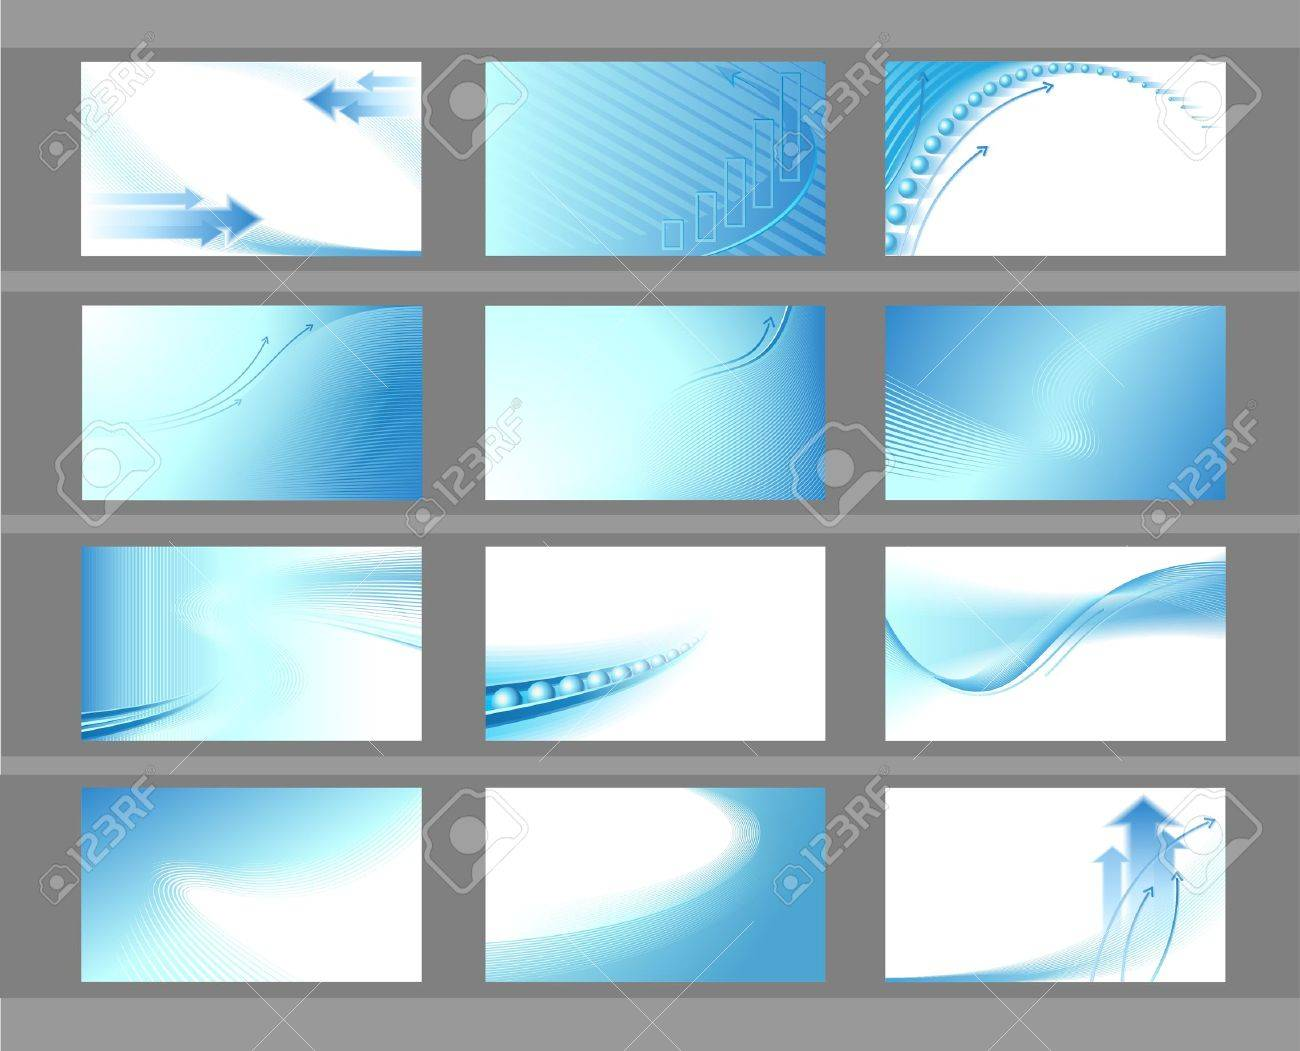 Horizontal vector backgrounds for business cards Stock Vector - 12410952